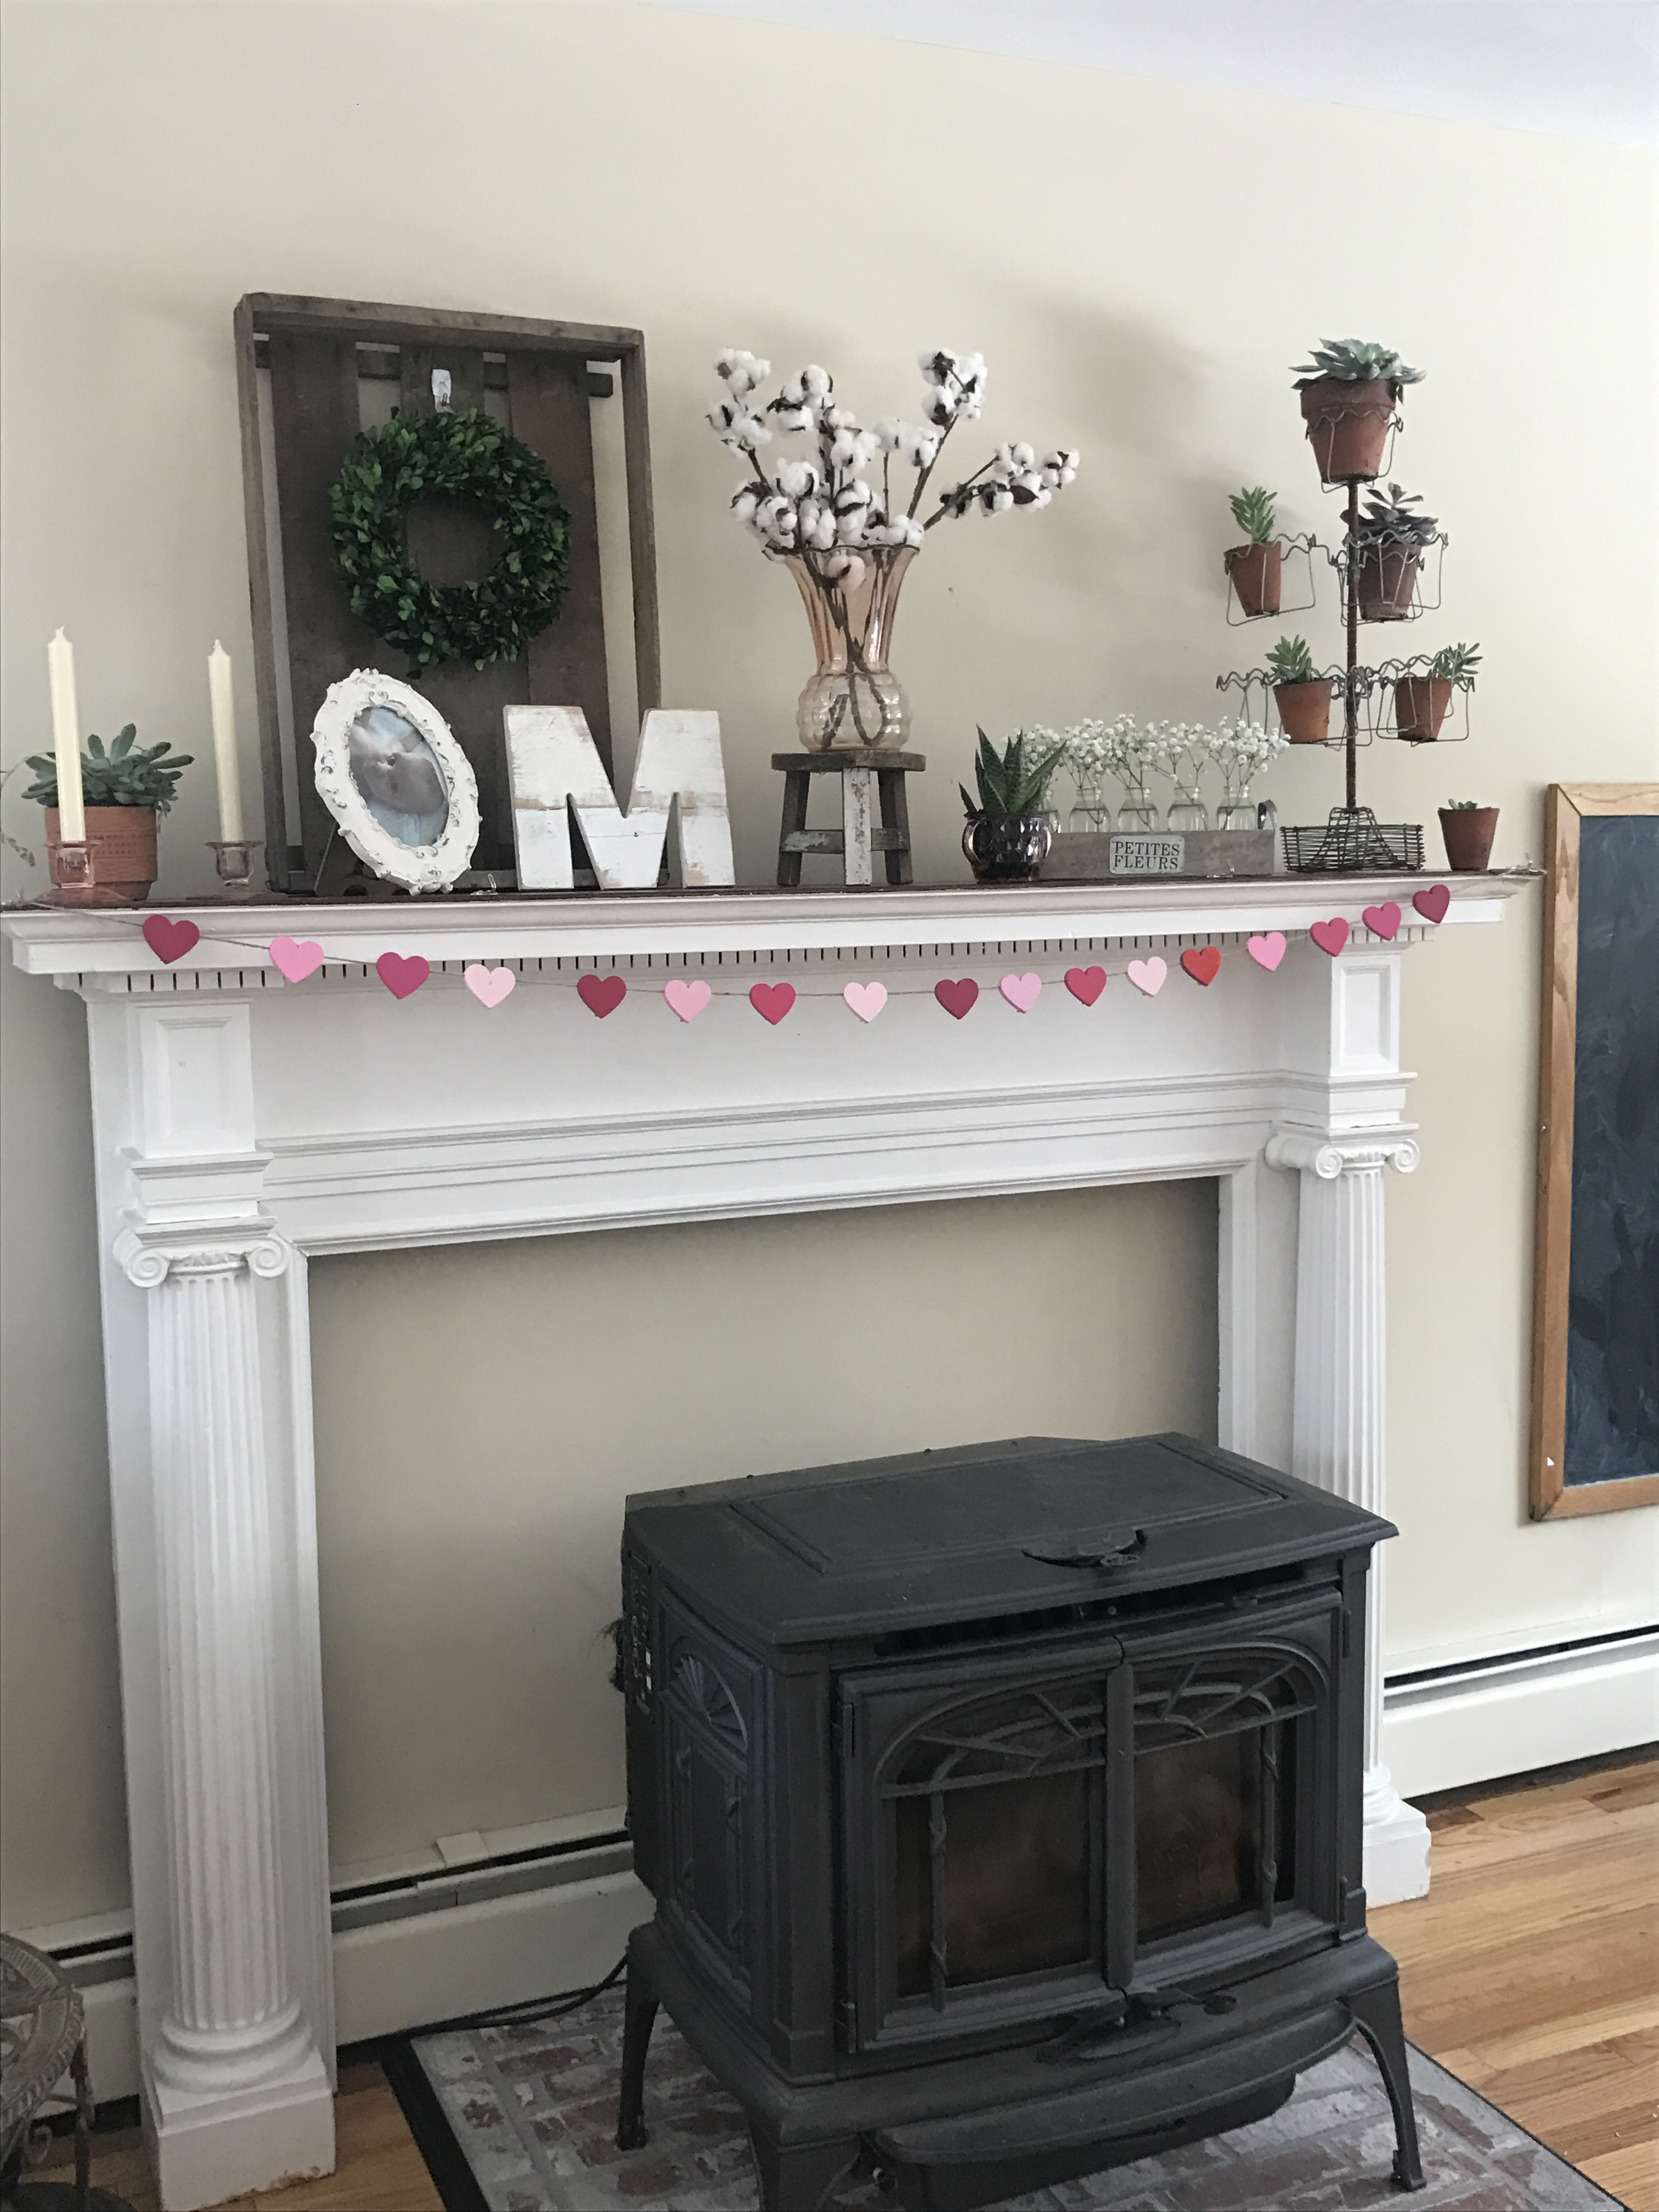 Winter To Spring Mantel Farmhouse And Succulents From